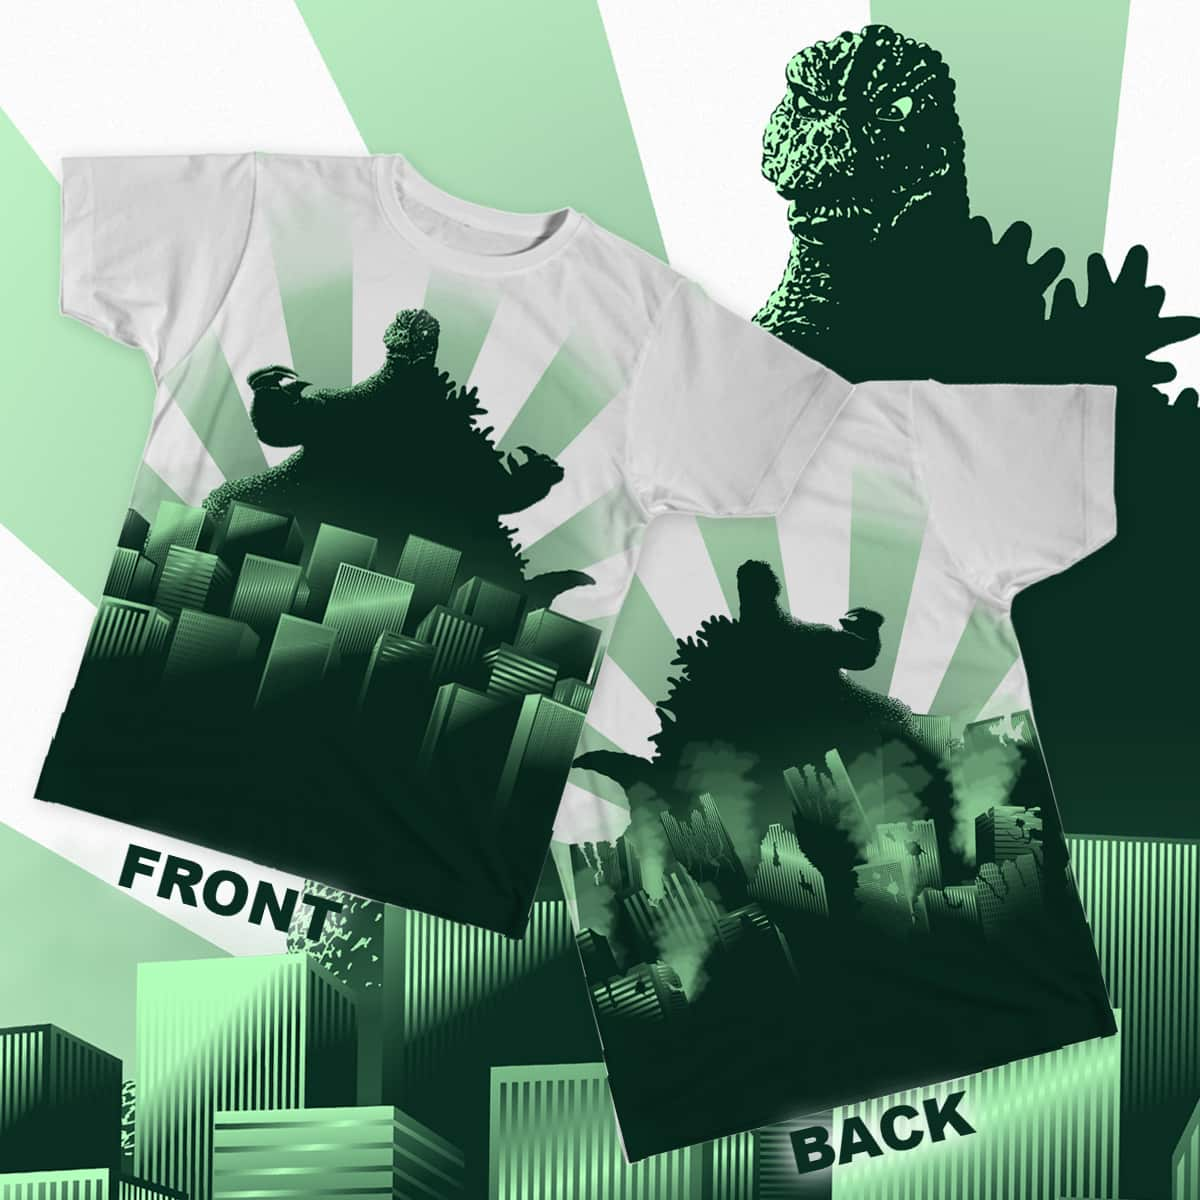 King of all Monsters by benphillippe on Threadless